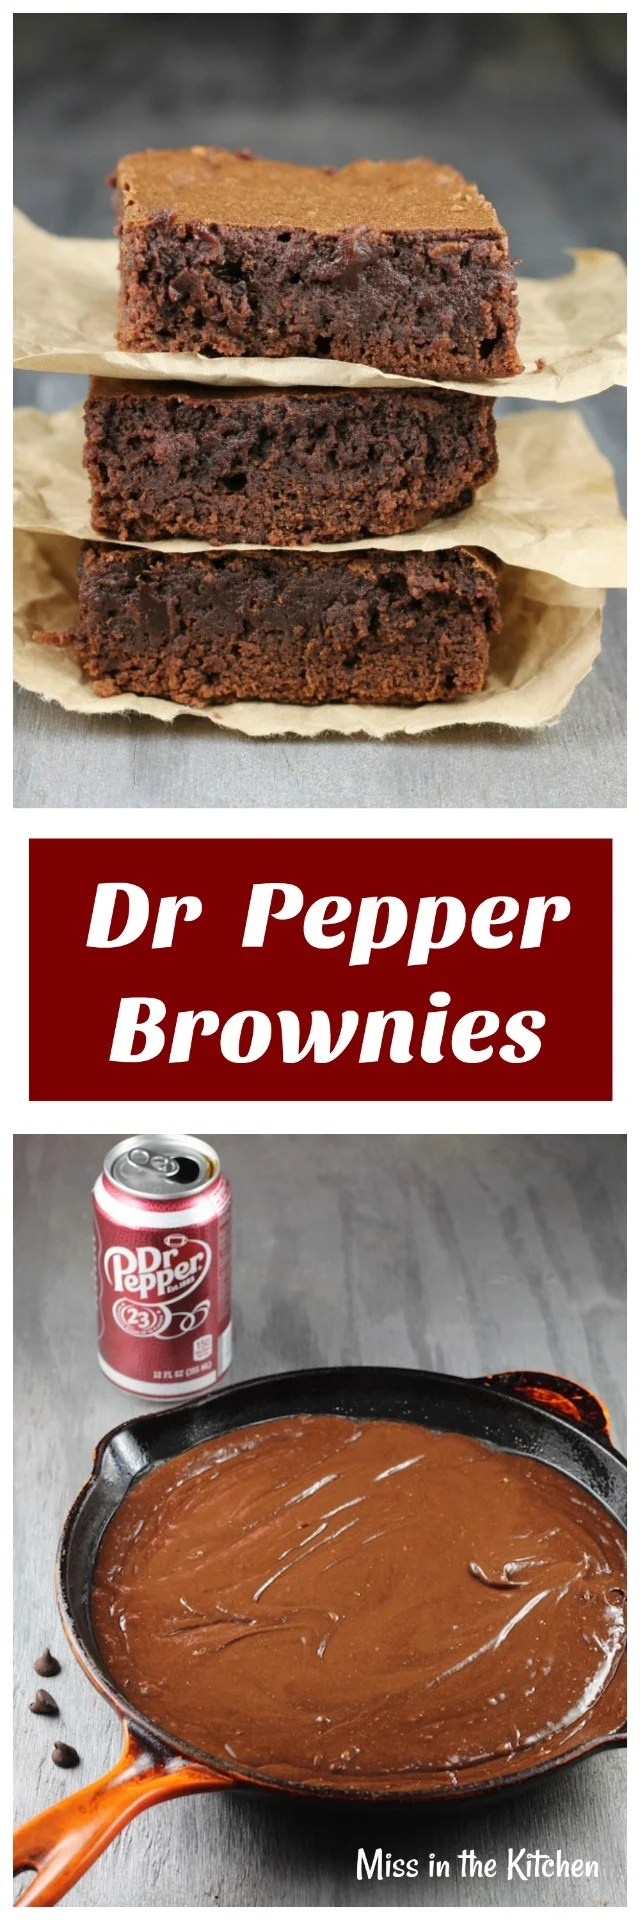 Dr Pepper Brownies Recipe from MissintheKitchen.com